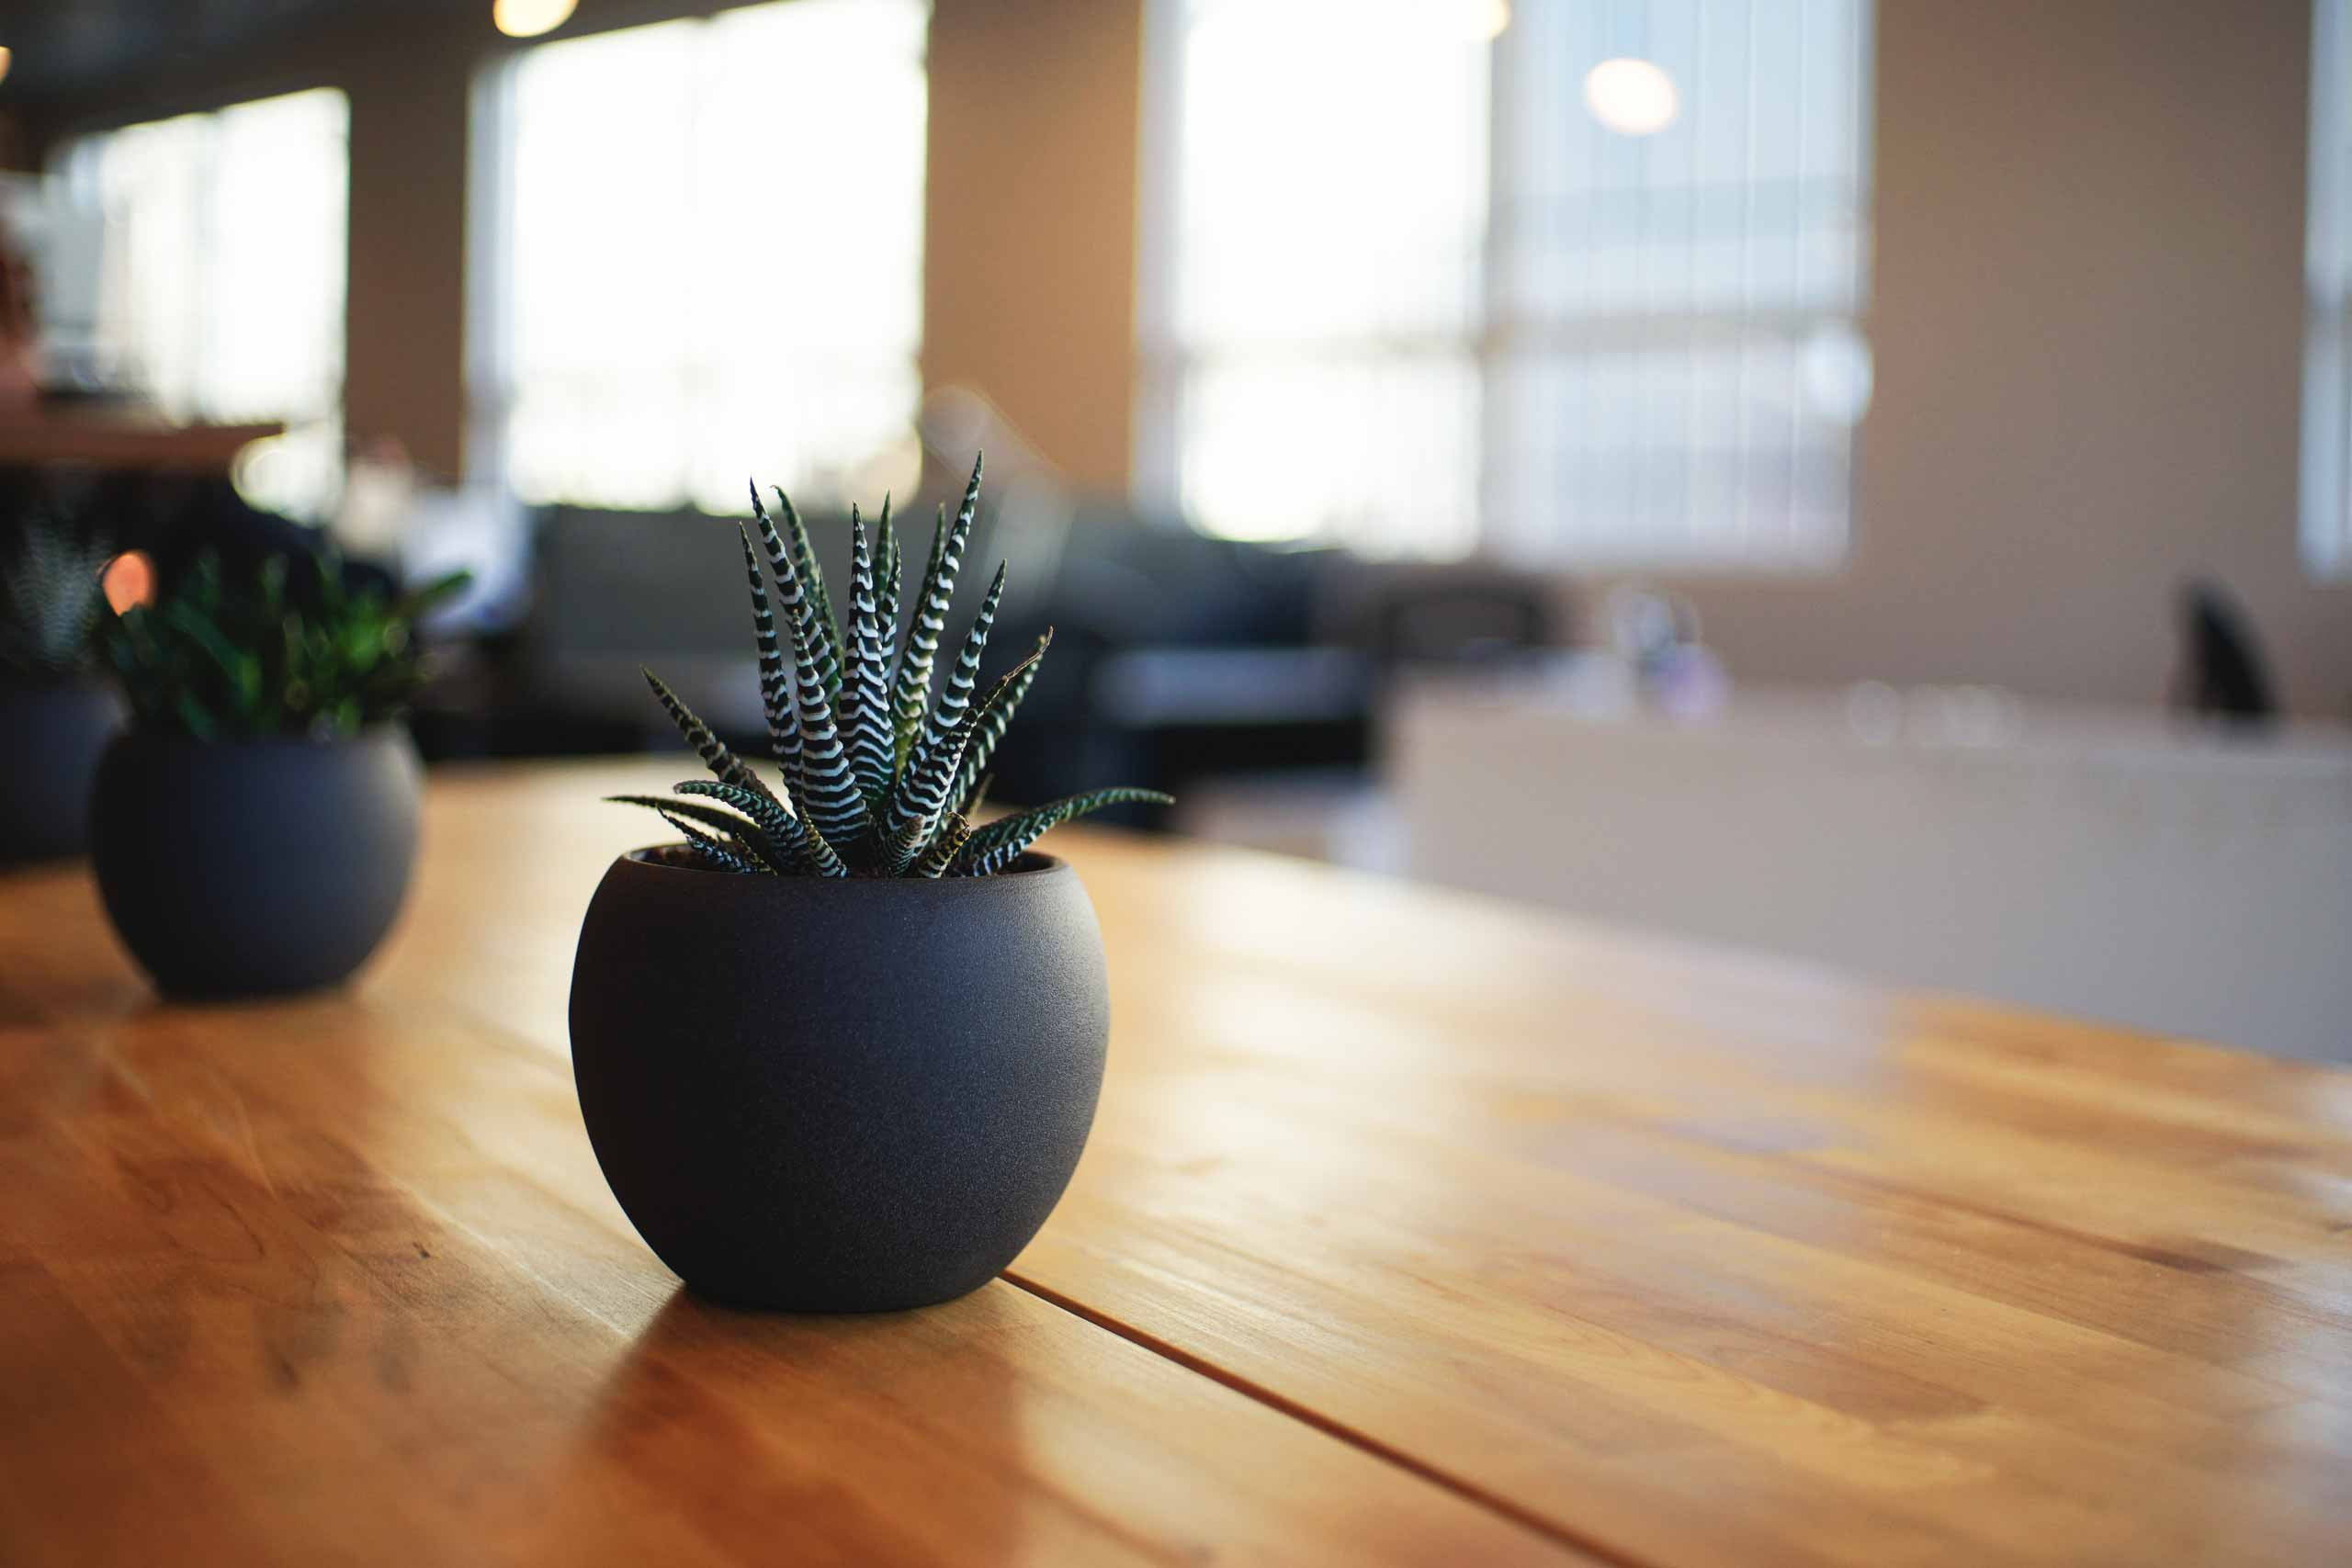 A warm, inviting, and well lit room sees two potted succulent plants placed atop a wooden table.